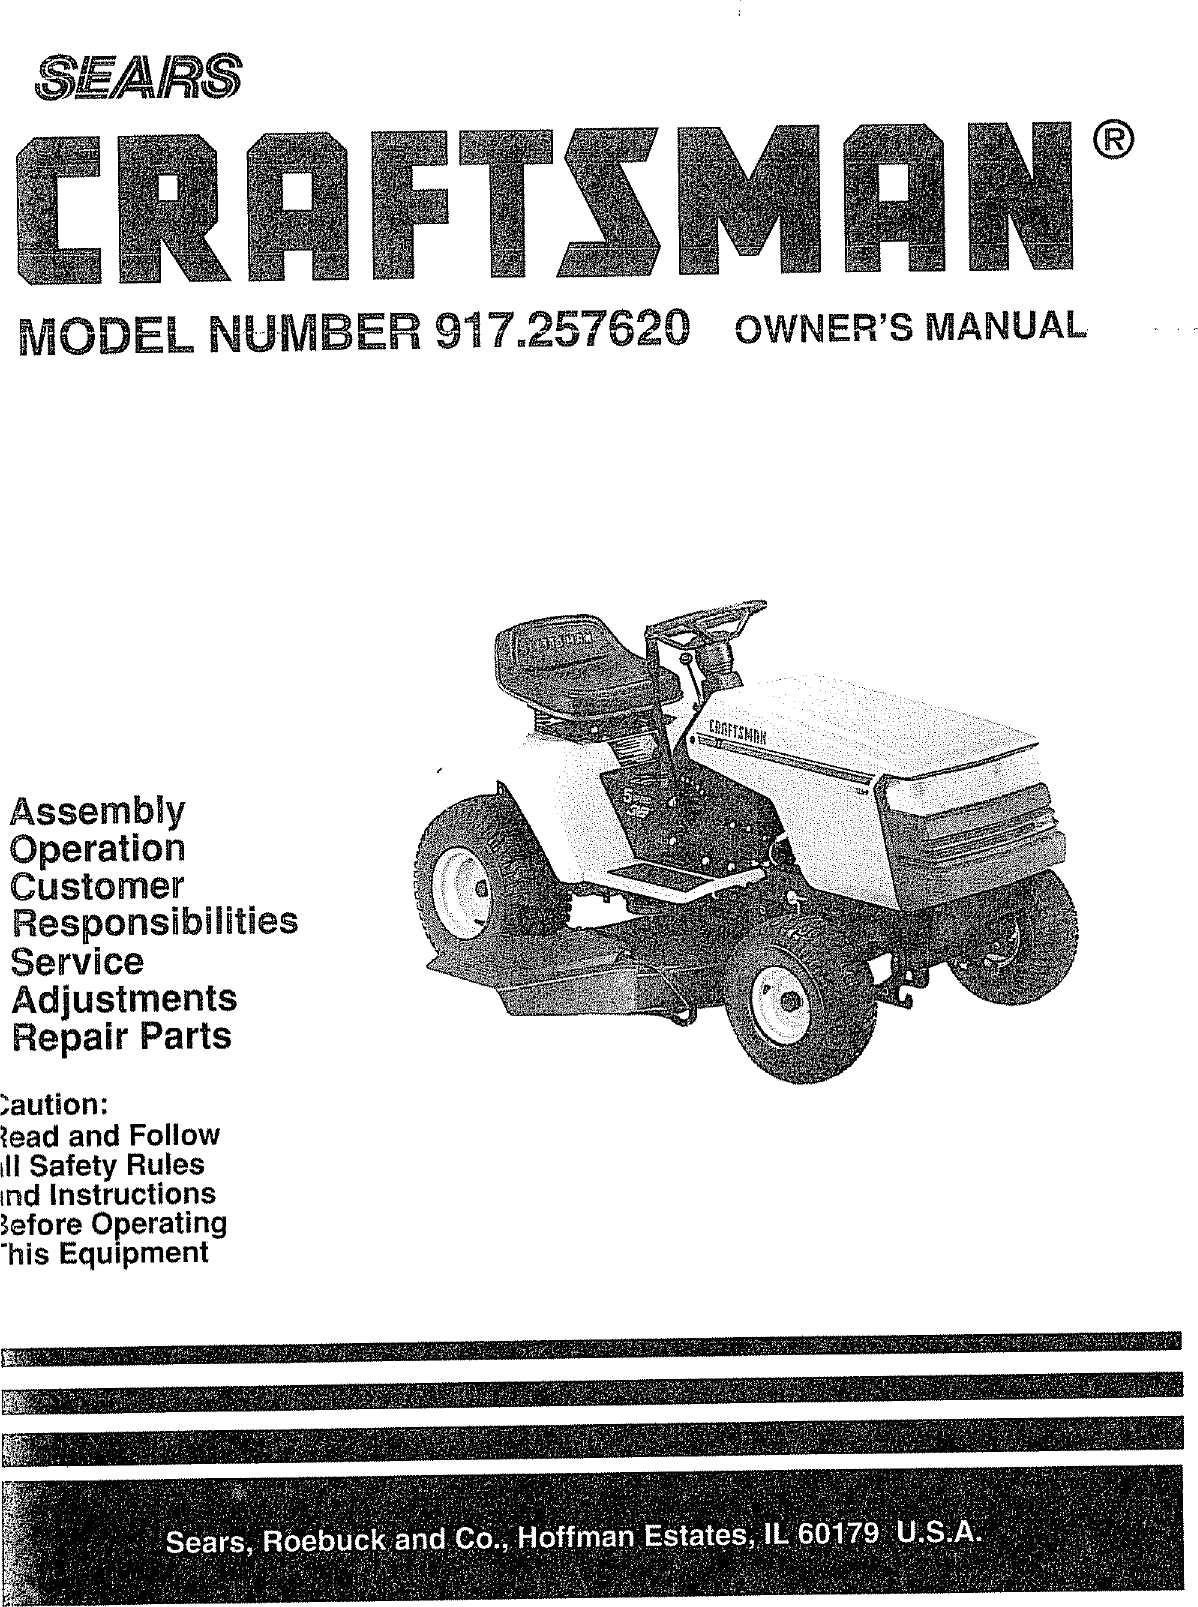 Craftsman 917257620 User Manual Lawn Tractor Manuals And Guides Electric Schematic Maker Jam Jelly Diagram Image Lr707473